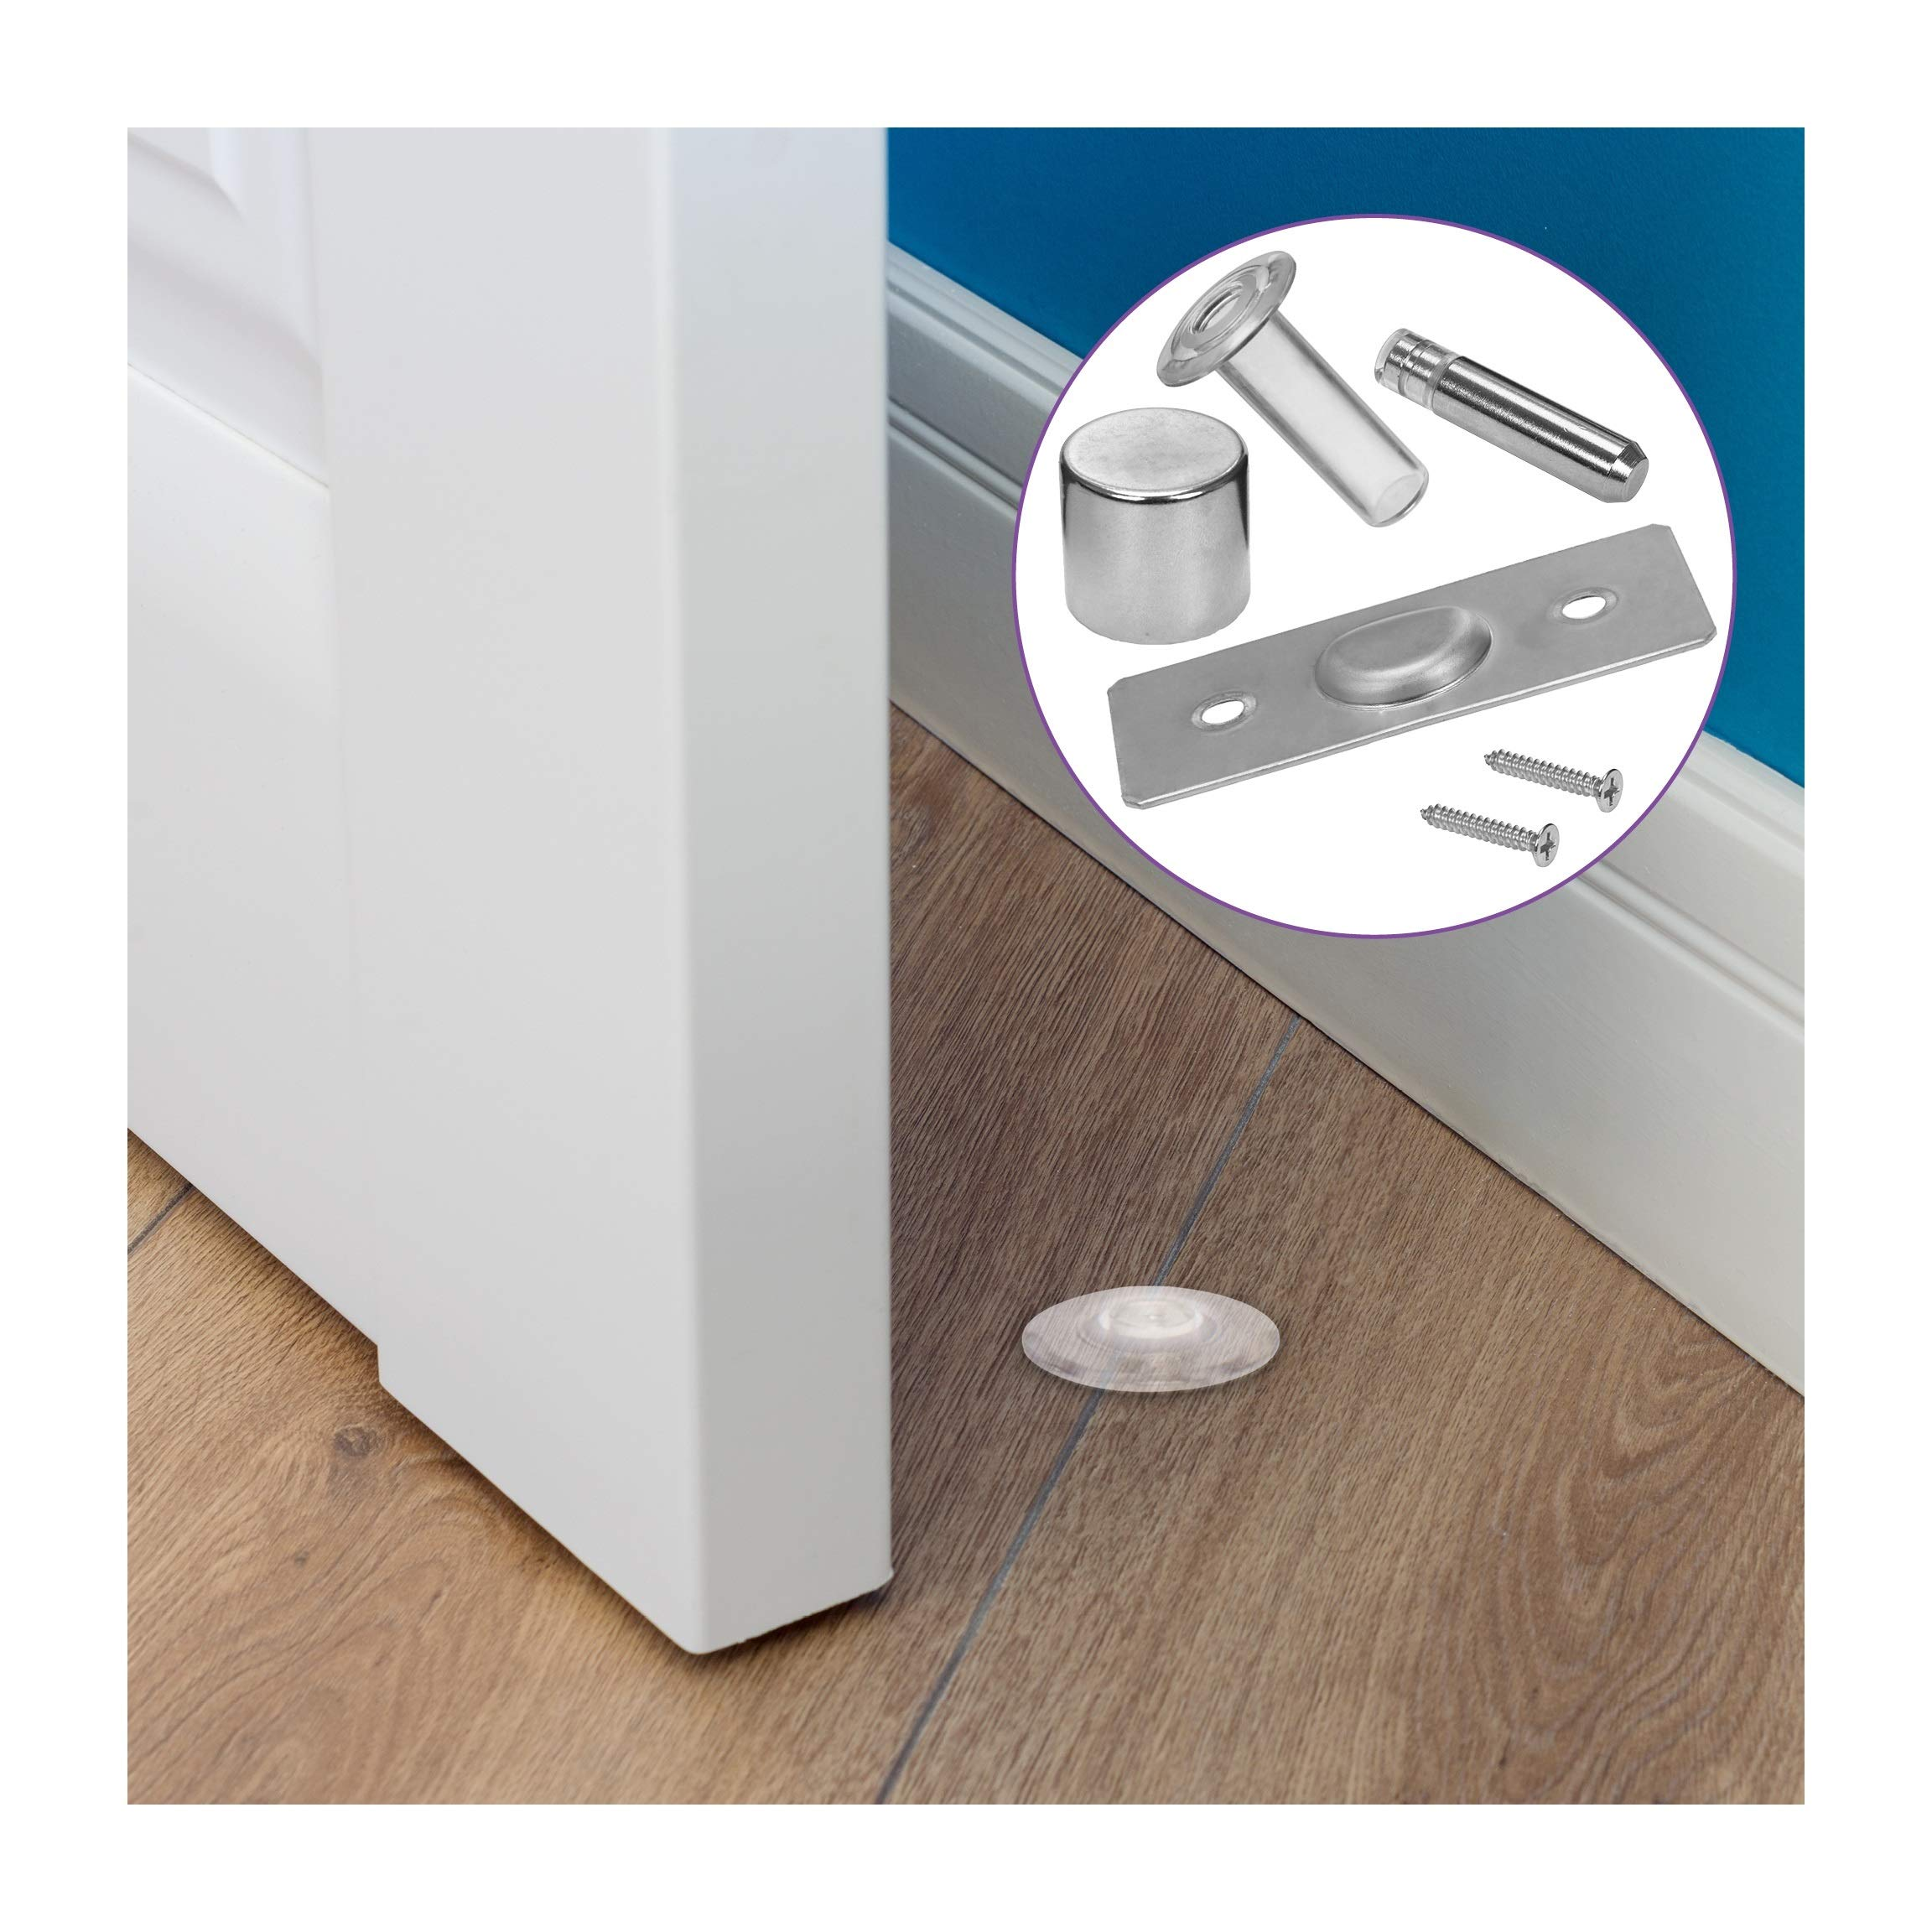 Fantom Magnetic Door Stop - Heavy Duty Door Stopper - Easy to Install Door holder Doorstop for Your Home, Office, Business or School (Fantom Door Stop) by Fantom